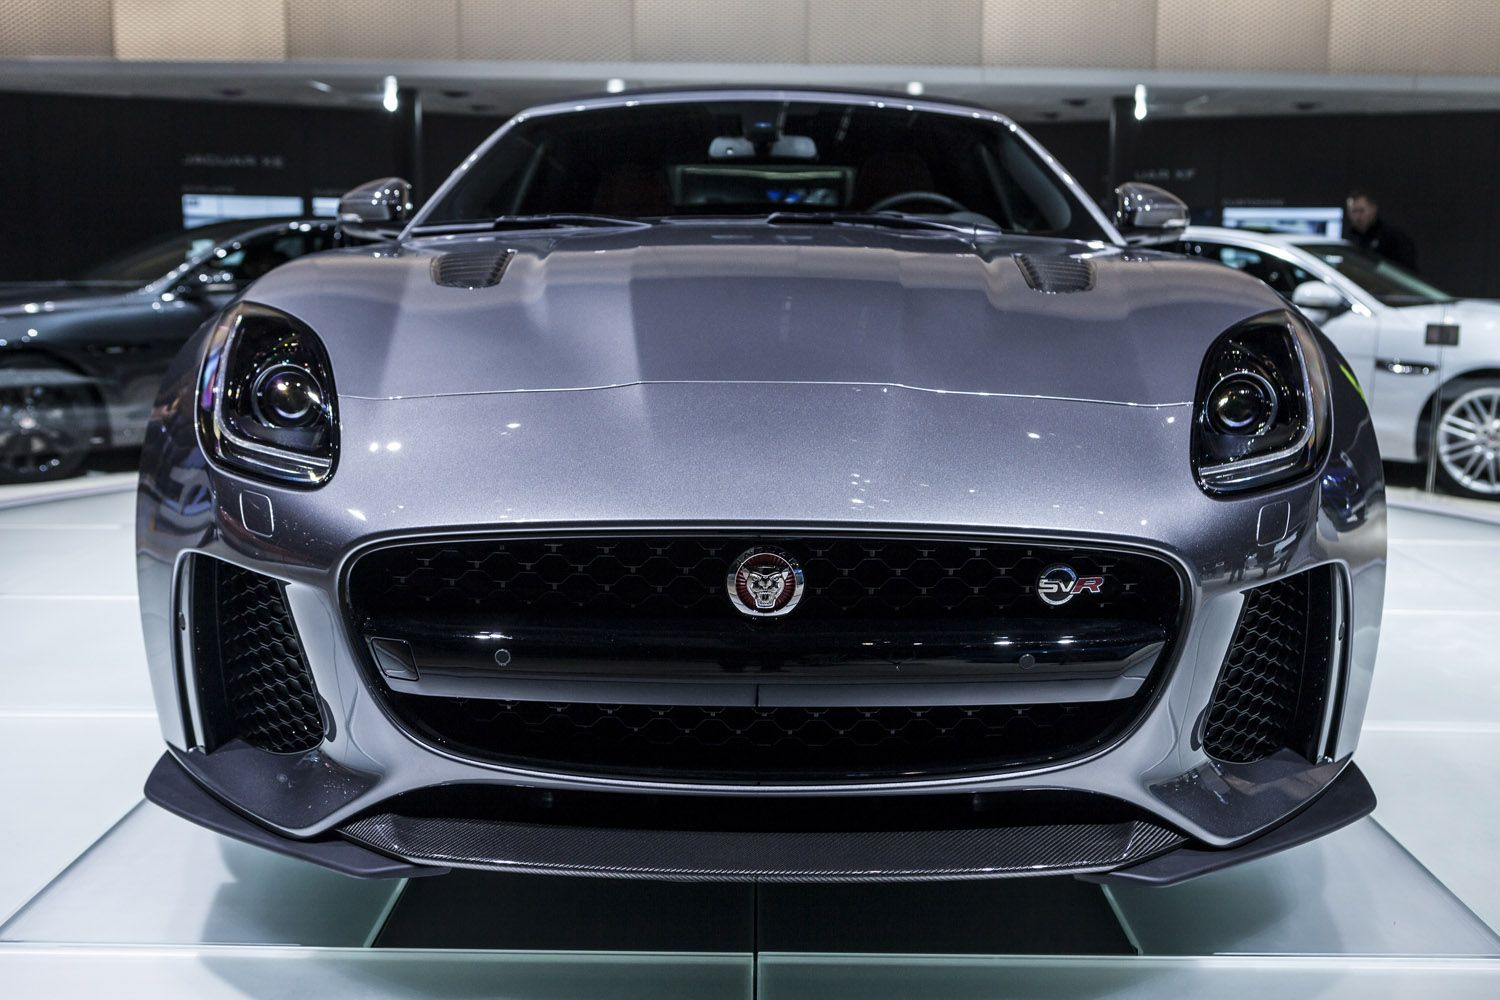 2018 Jaguar F Type SVR Release Date And Price. 2018 Jaguar F Varieties SVR  Coupe Launches Supercharged Engine Which Offers 550 Horsepower.